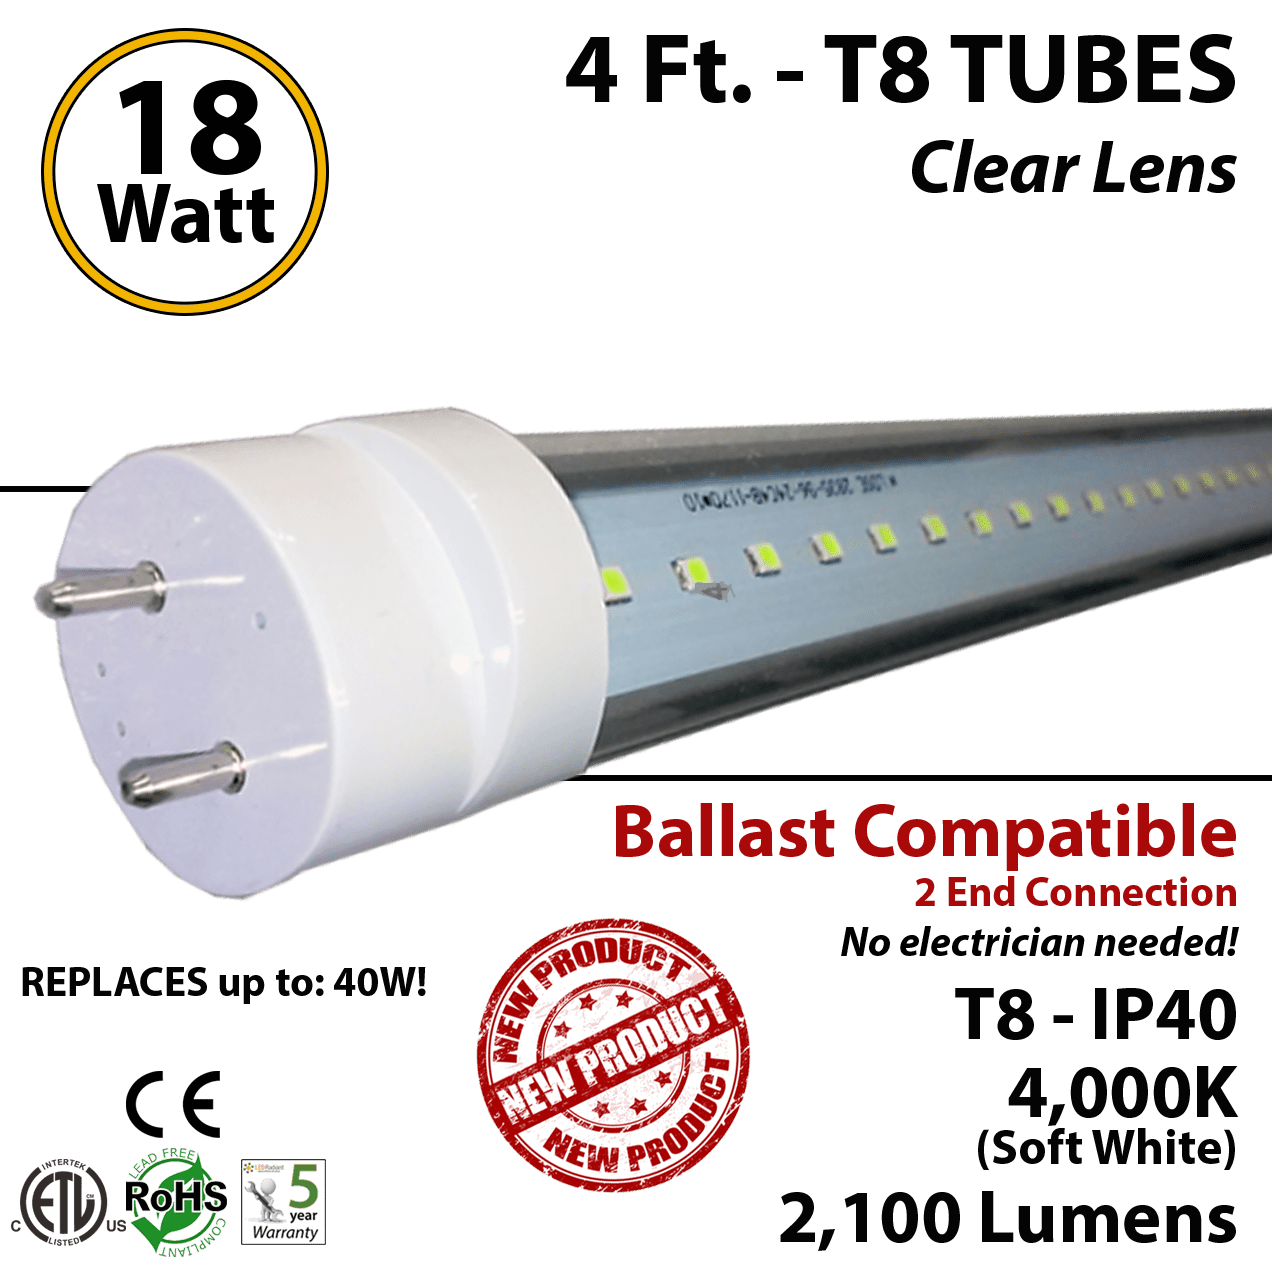 Led T8 18w 4ft Led Tube 2100lm T8 4000k Clear Lens Plug And Play Ballast Compatible Ip40 Etl